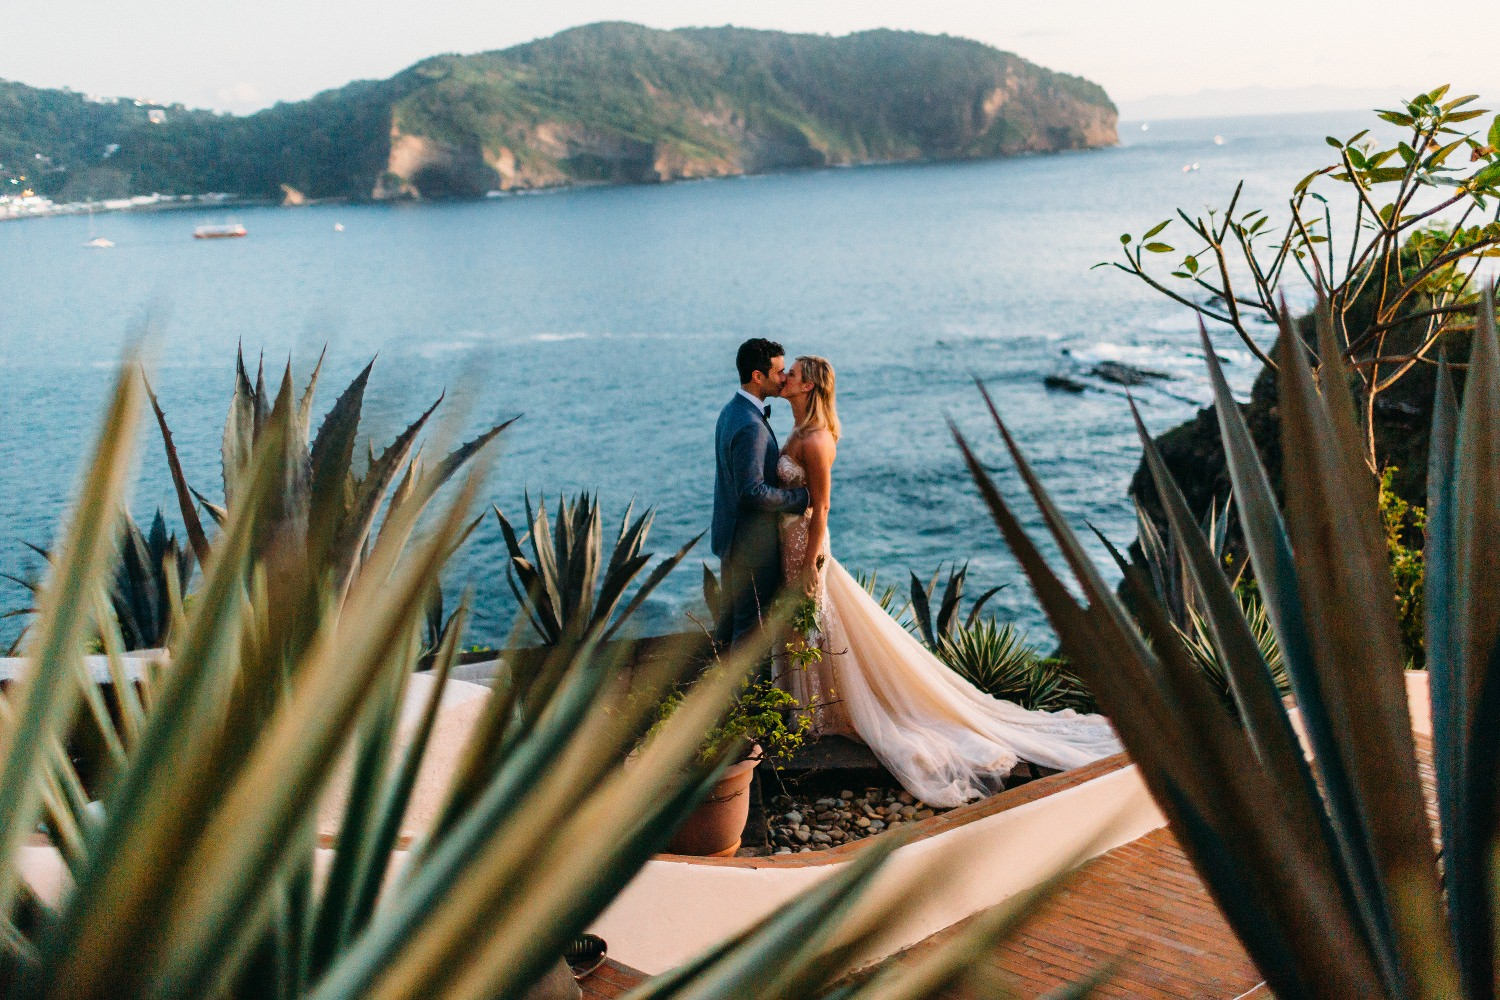 Destination wedding photography in Nicaragua and Costa Rica. Best wedding venue on the beach with amazing view of the San Juan Bay. Christian & Dana Wedding.